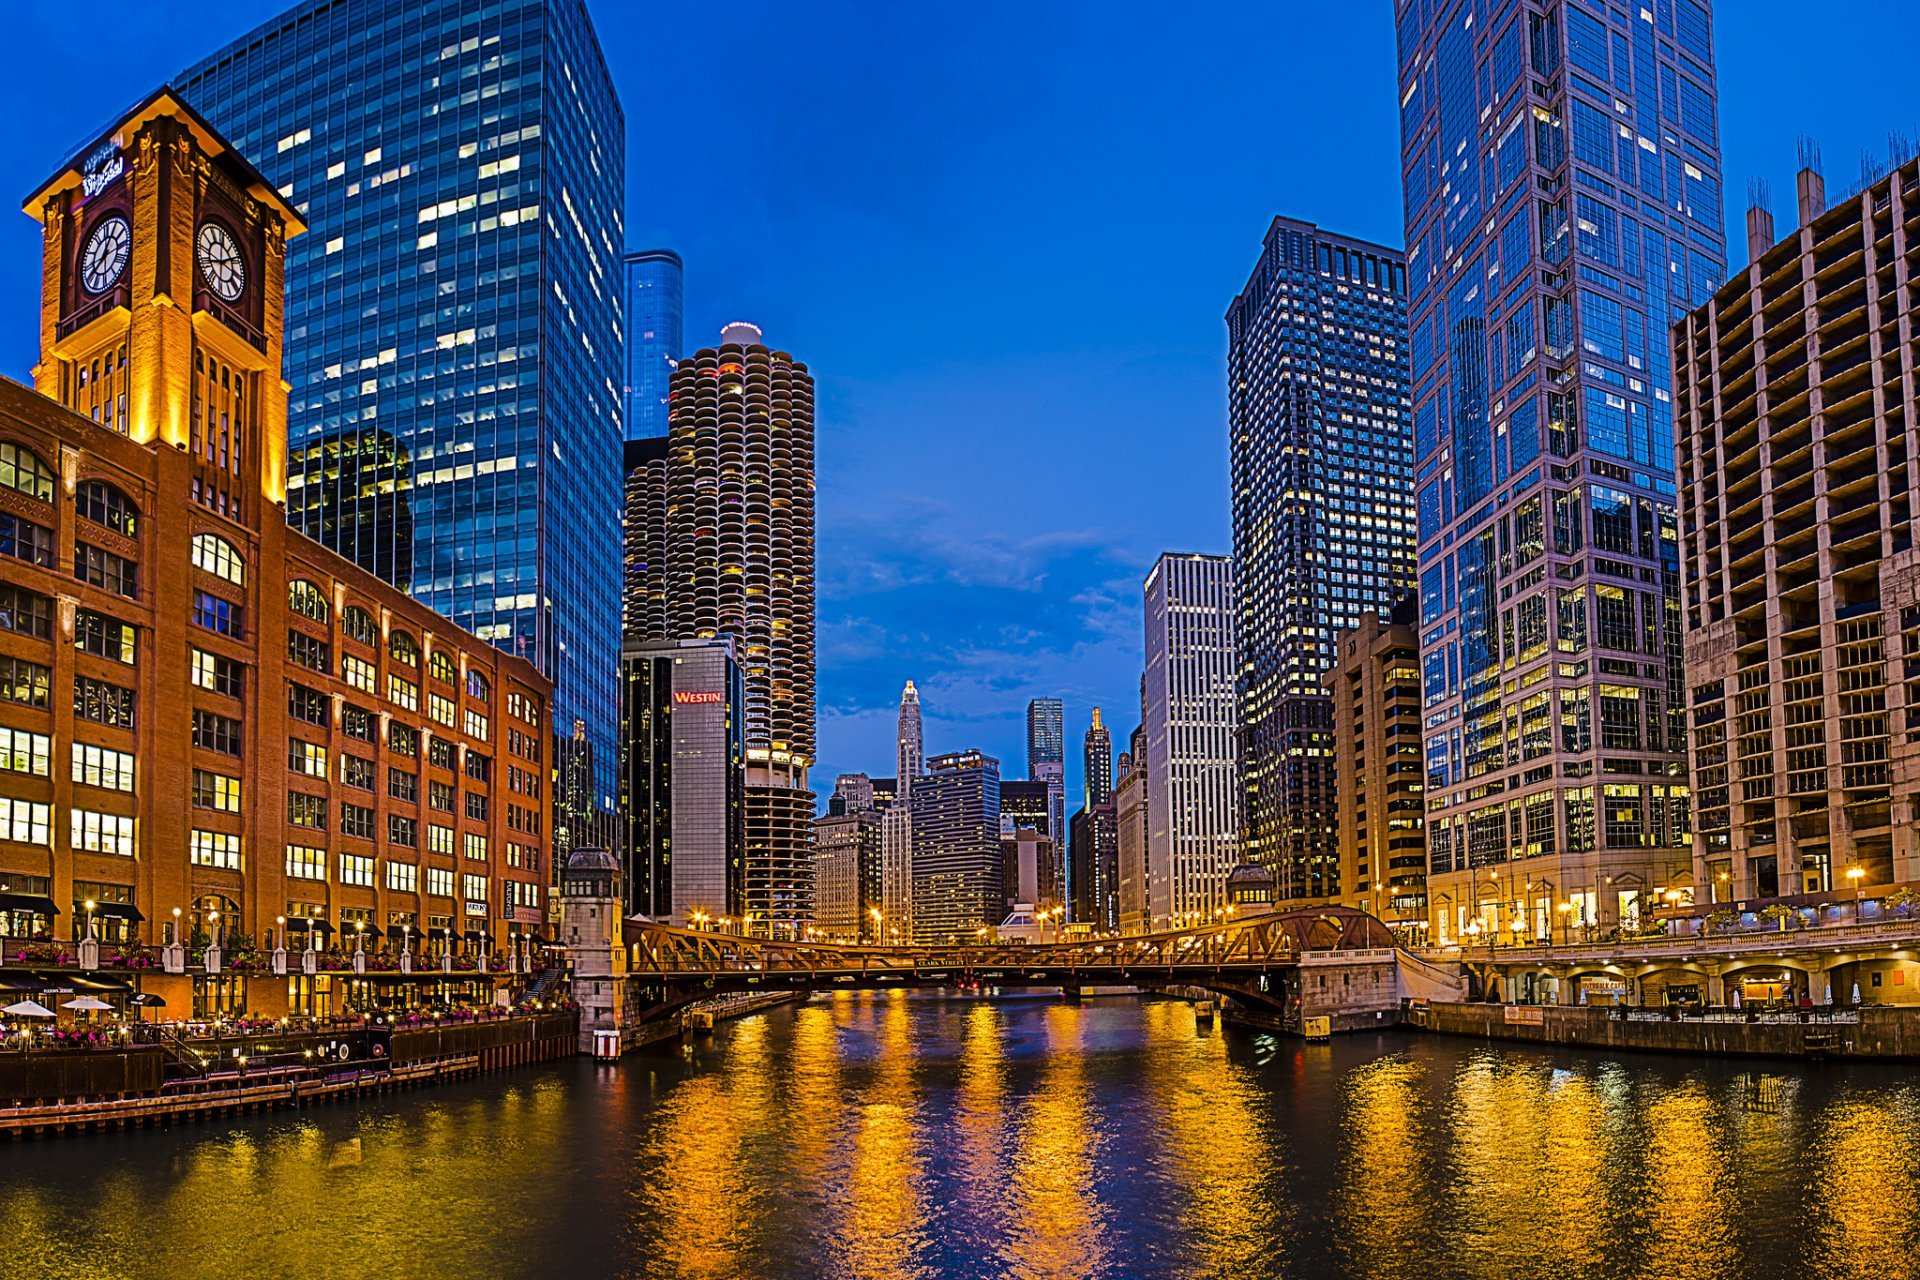 Chicago Illinois USA city night skyscraper buildings river lights 1920x1280